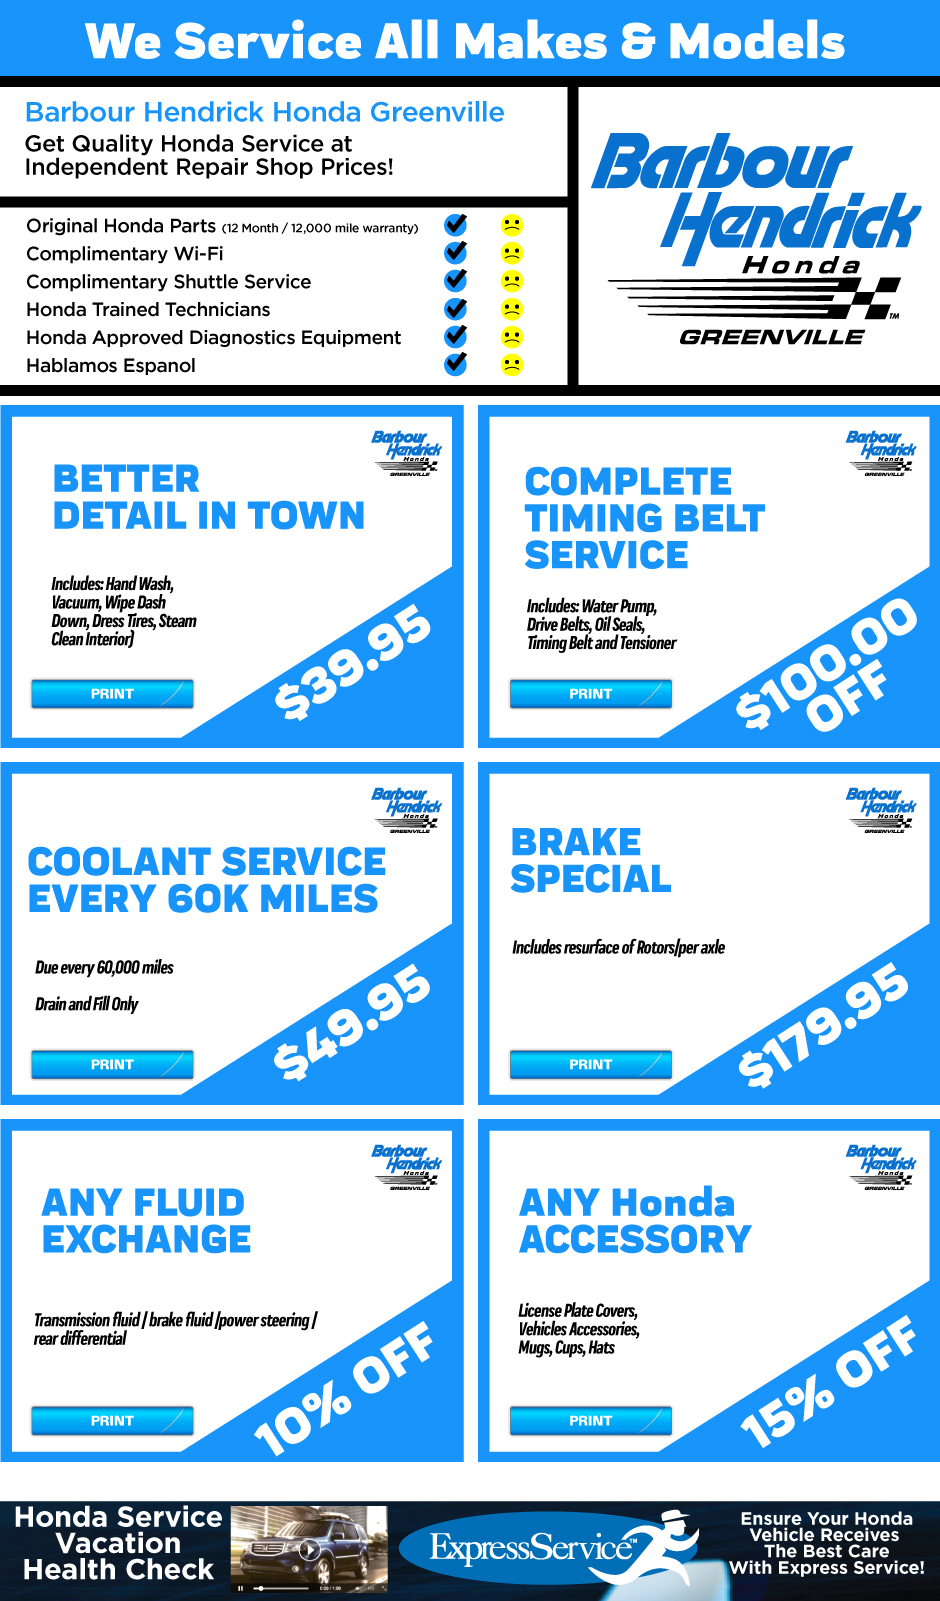 barbour hendrick honda service coupons